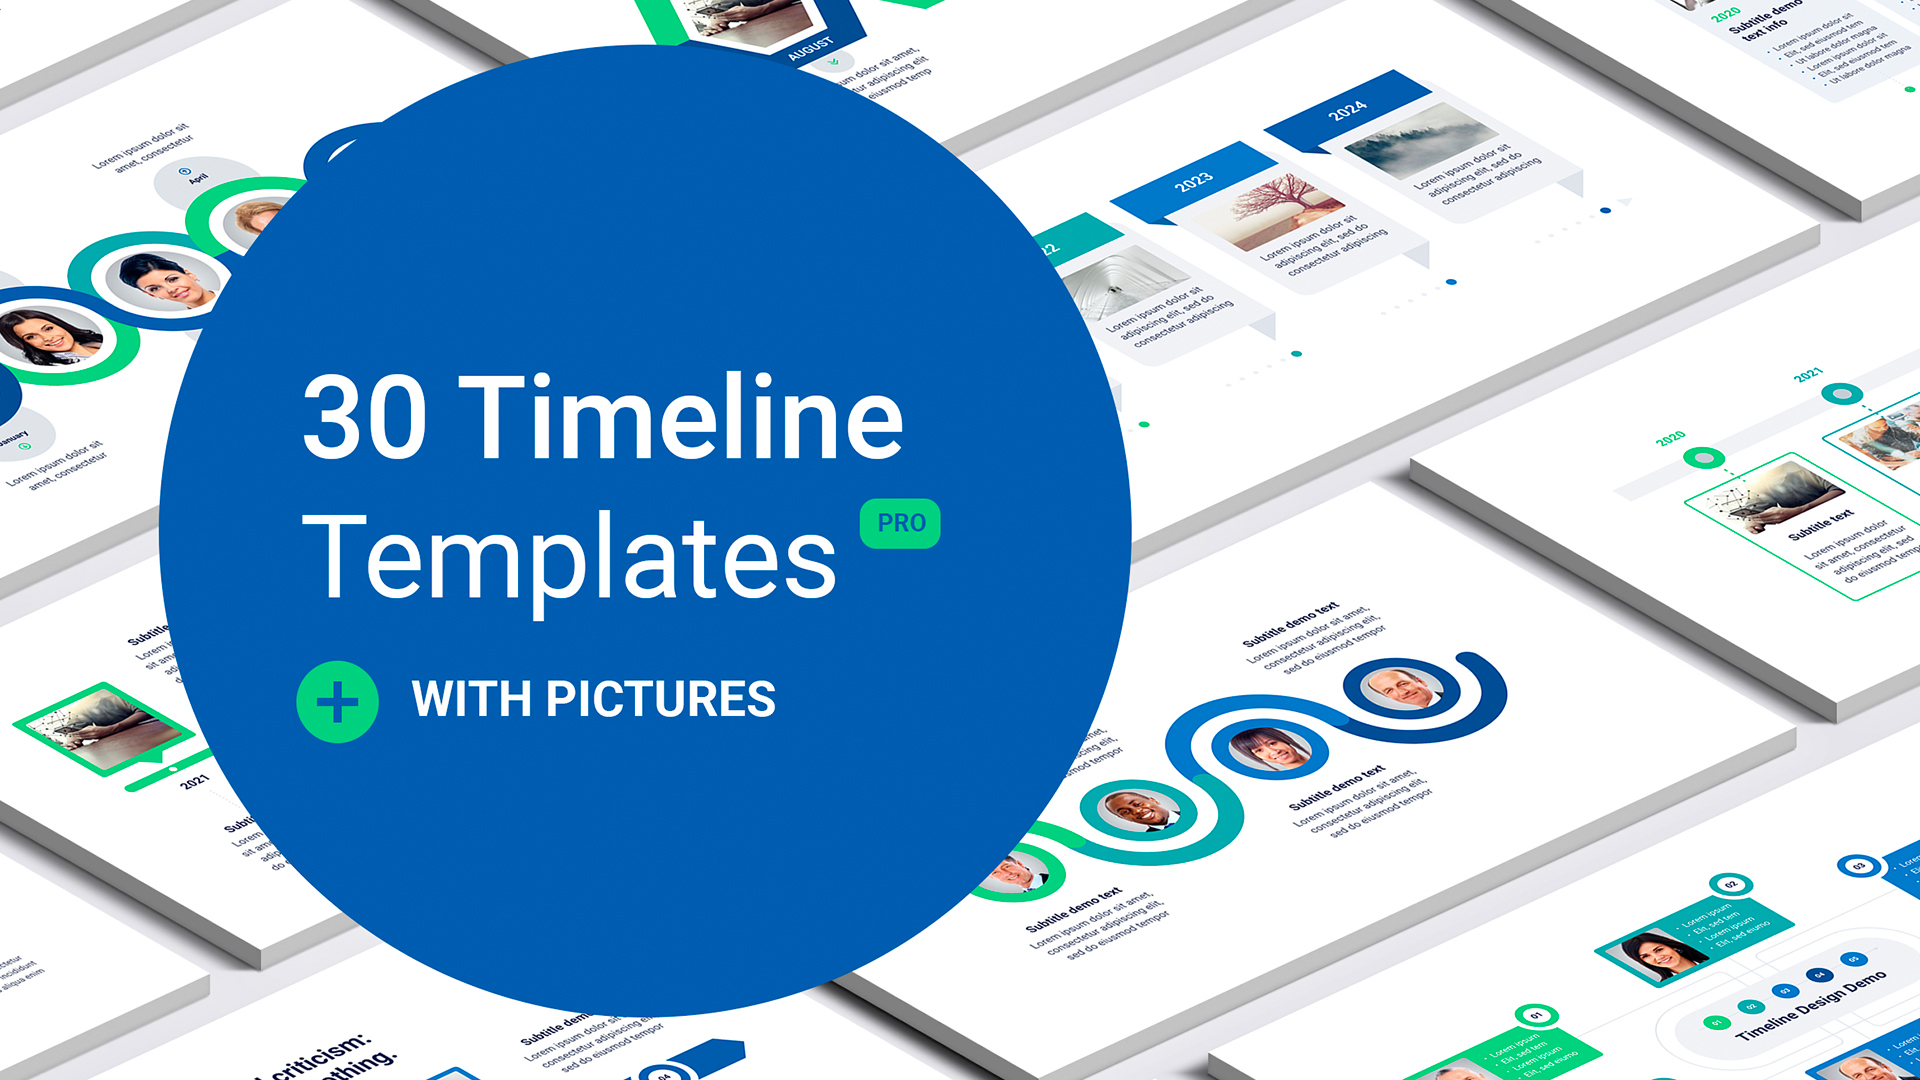 Timeline template with pictures Google slides